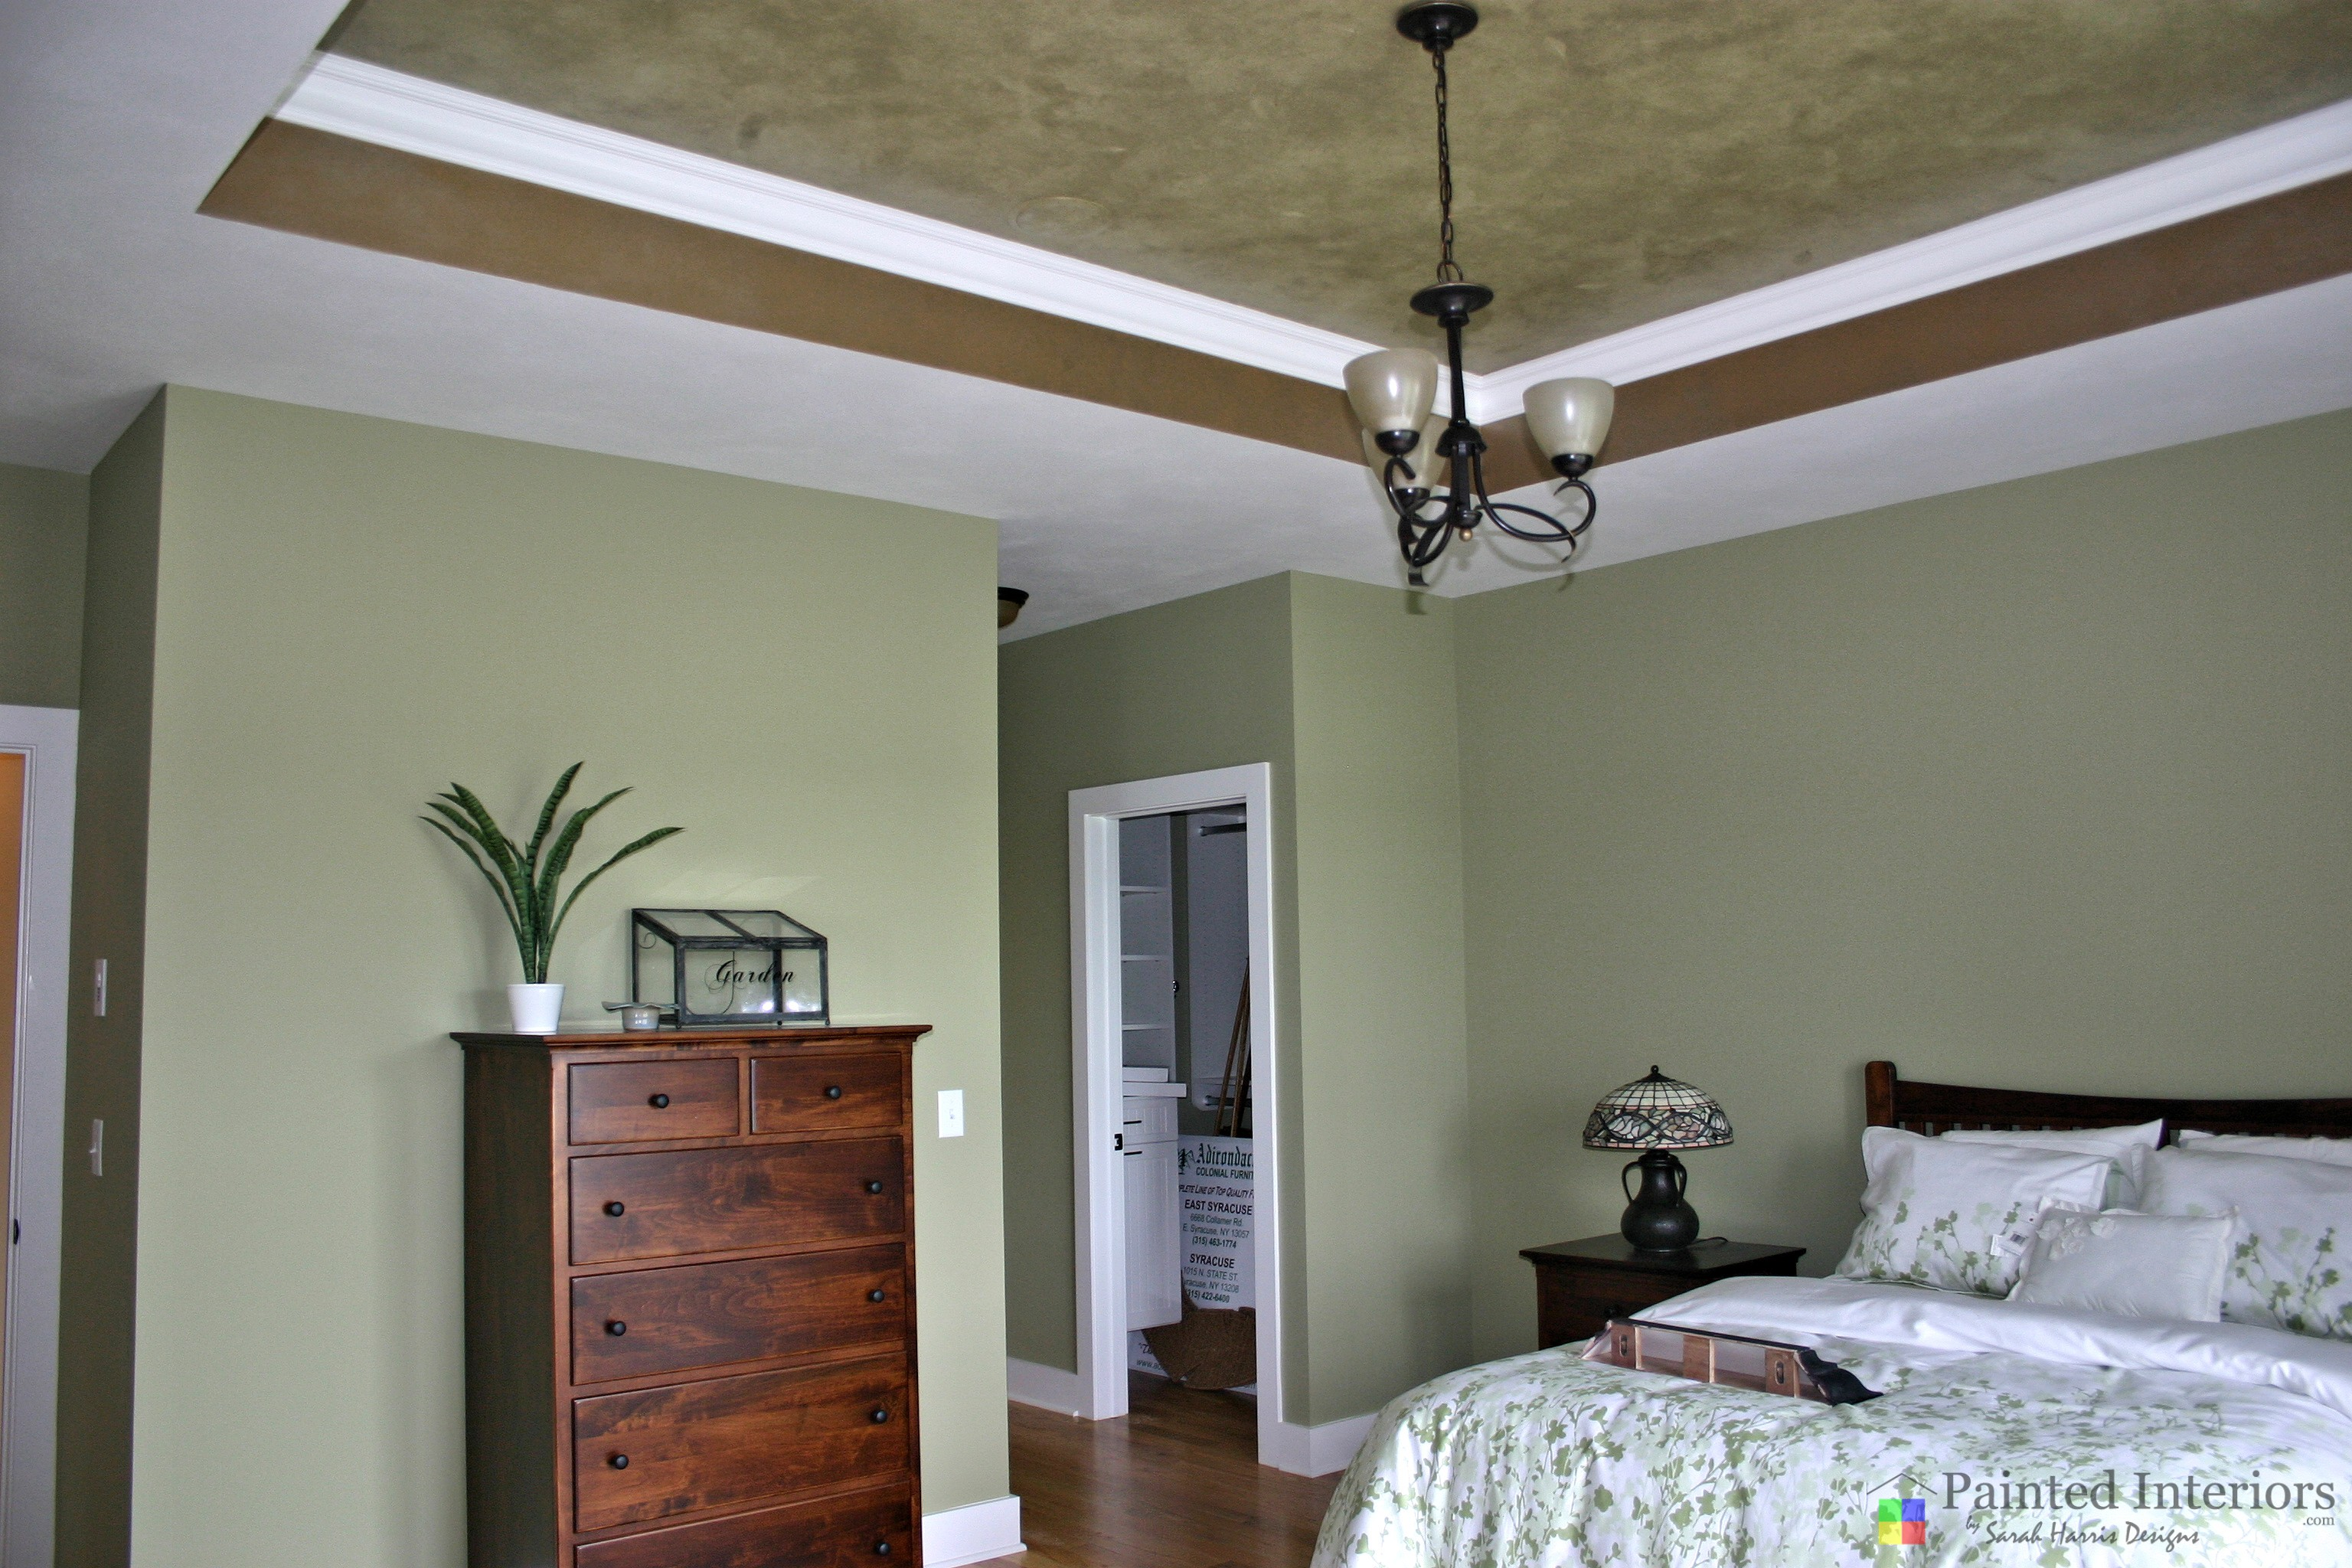 faux painted trey ceiling with scattered leaves